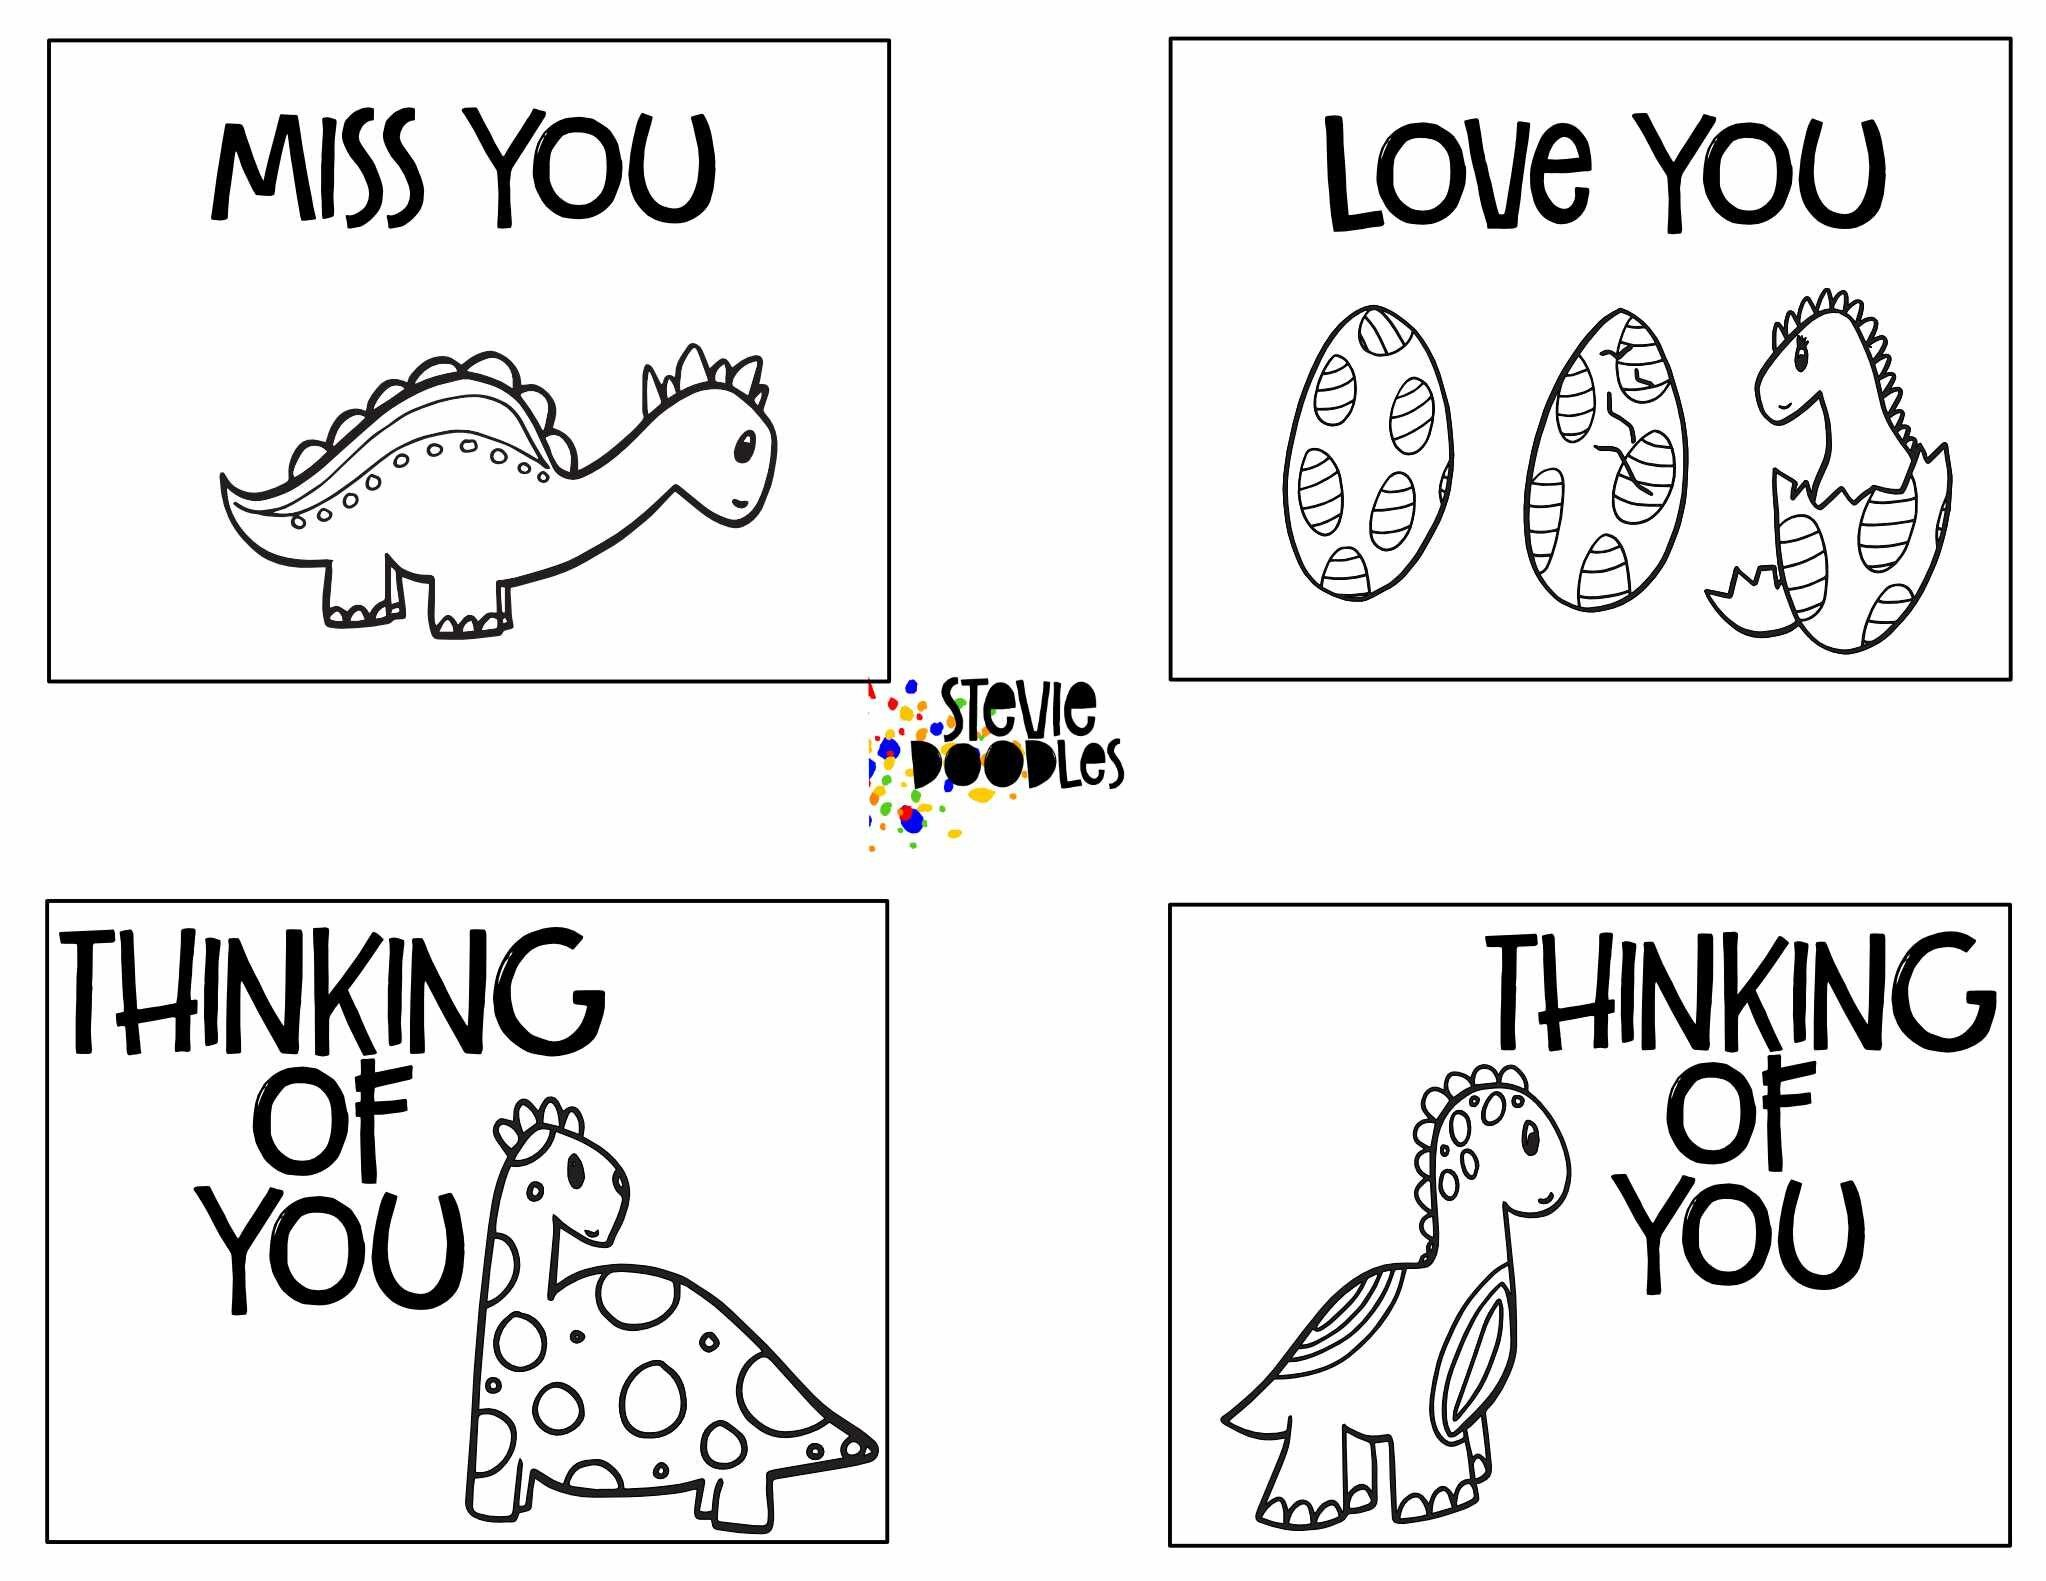 Thinking Of You 7 Pages Of Cards To Print And Color Stevie Doodles Free Cards To Print Free Printable Coloring Pages Free Kids Coloring Pages